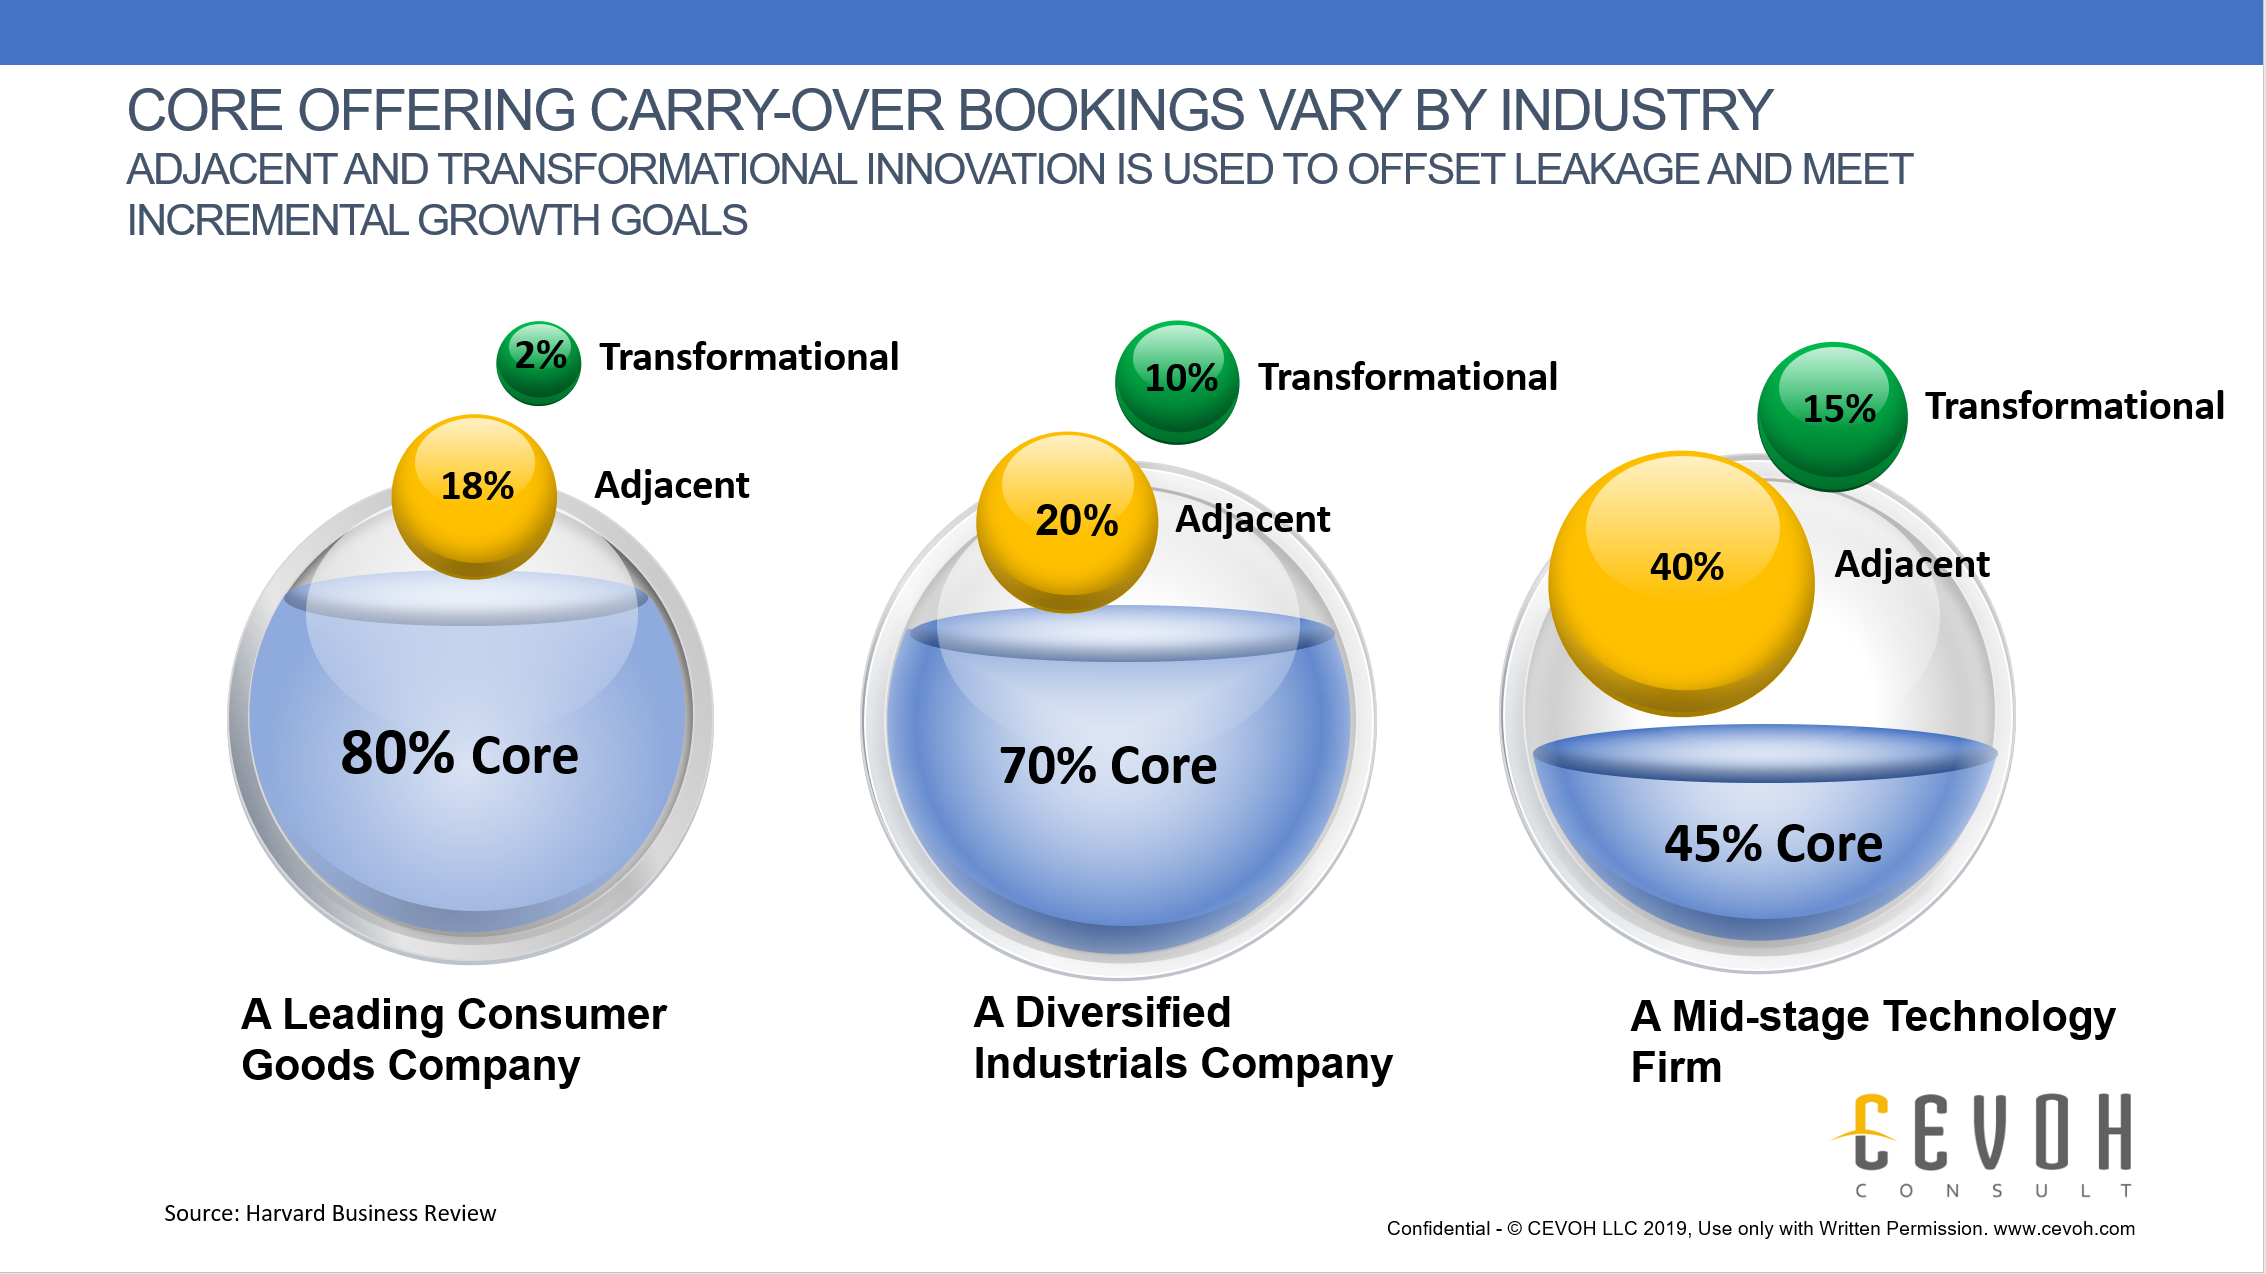 This slide showcases how different industries generate incremental revenue from both adjacent and transformational innovation. As the study from HBR illustrates, the percentages from best practice companies are rather large. To meet and sustain these percentages of incremental revenue, you need to hire a company like CEVOH. Especially noteworthy are the differences between adjacent and transformation groupings. Adjacent innovation might be the type of things we are more used to seeing from a company like Apple - where the truly transformational innovation ideas are more of a challenge. Adjacent innovation in this example might be different form factors, better features/benefits and some mild differentiation gains - all to help improve incremental customer value. An example of a transformational innovation would be the development of better AI methods that help humans complete mundane tasks. In this example, the transformational innovation might create whole new value streams to attract new, unique customers. The transformational innovations are harder to achieve and generally provide larger incremental revenue and margin.